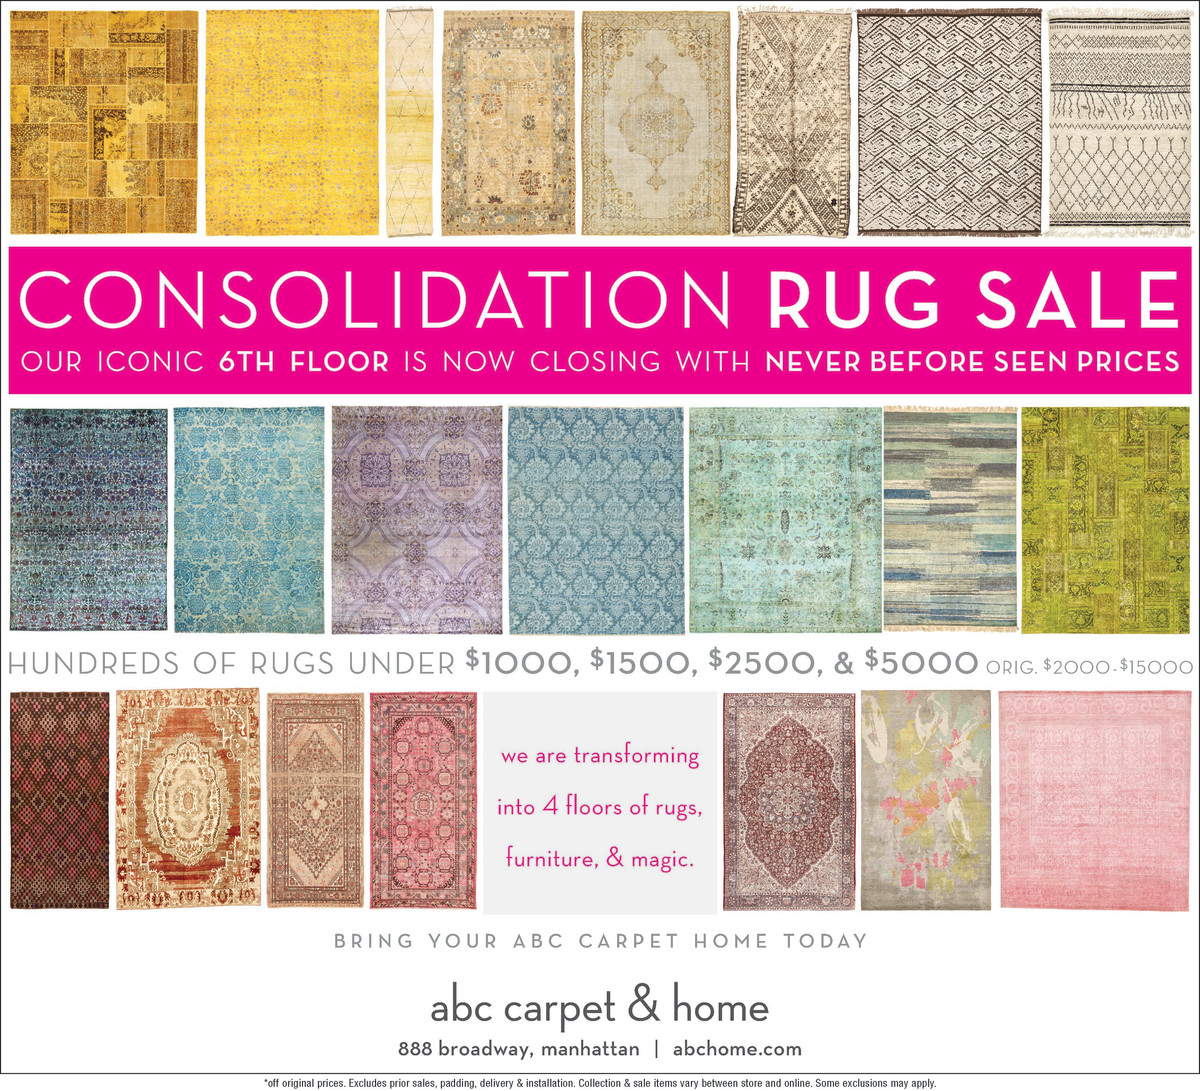 Rugs Online Sale Abc Carpet Consolidation Rug Sale 888 Broadway New York Ny